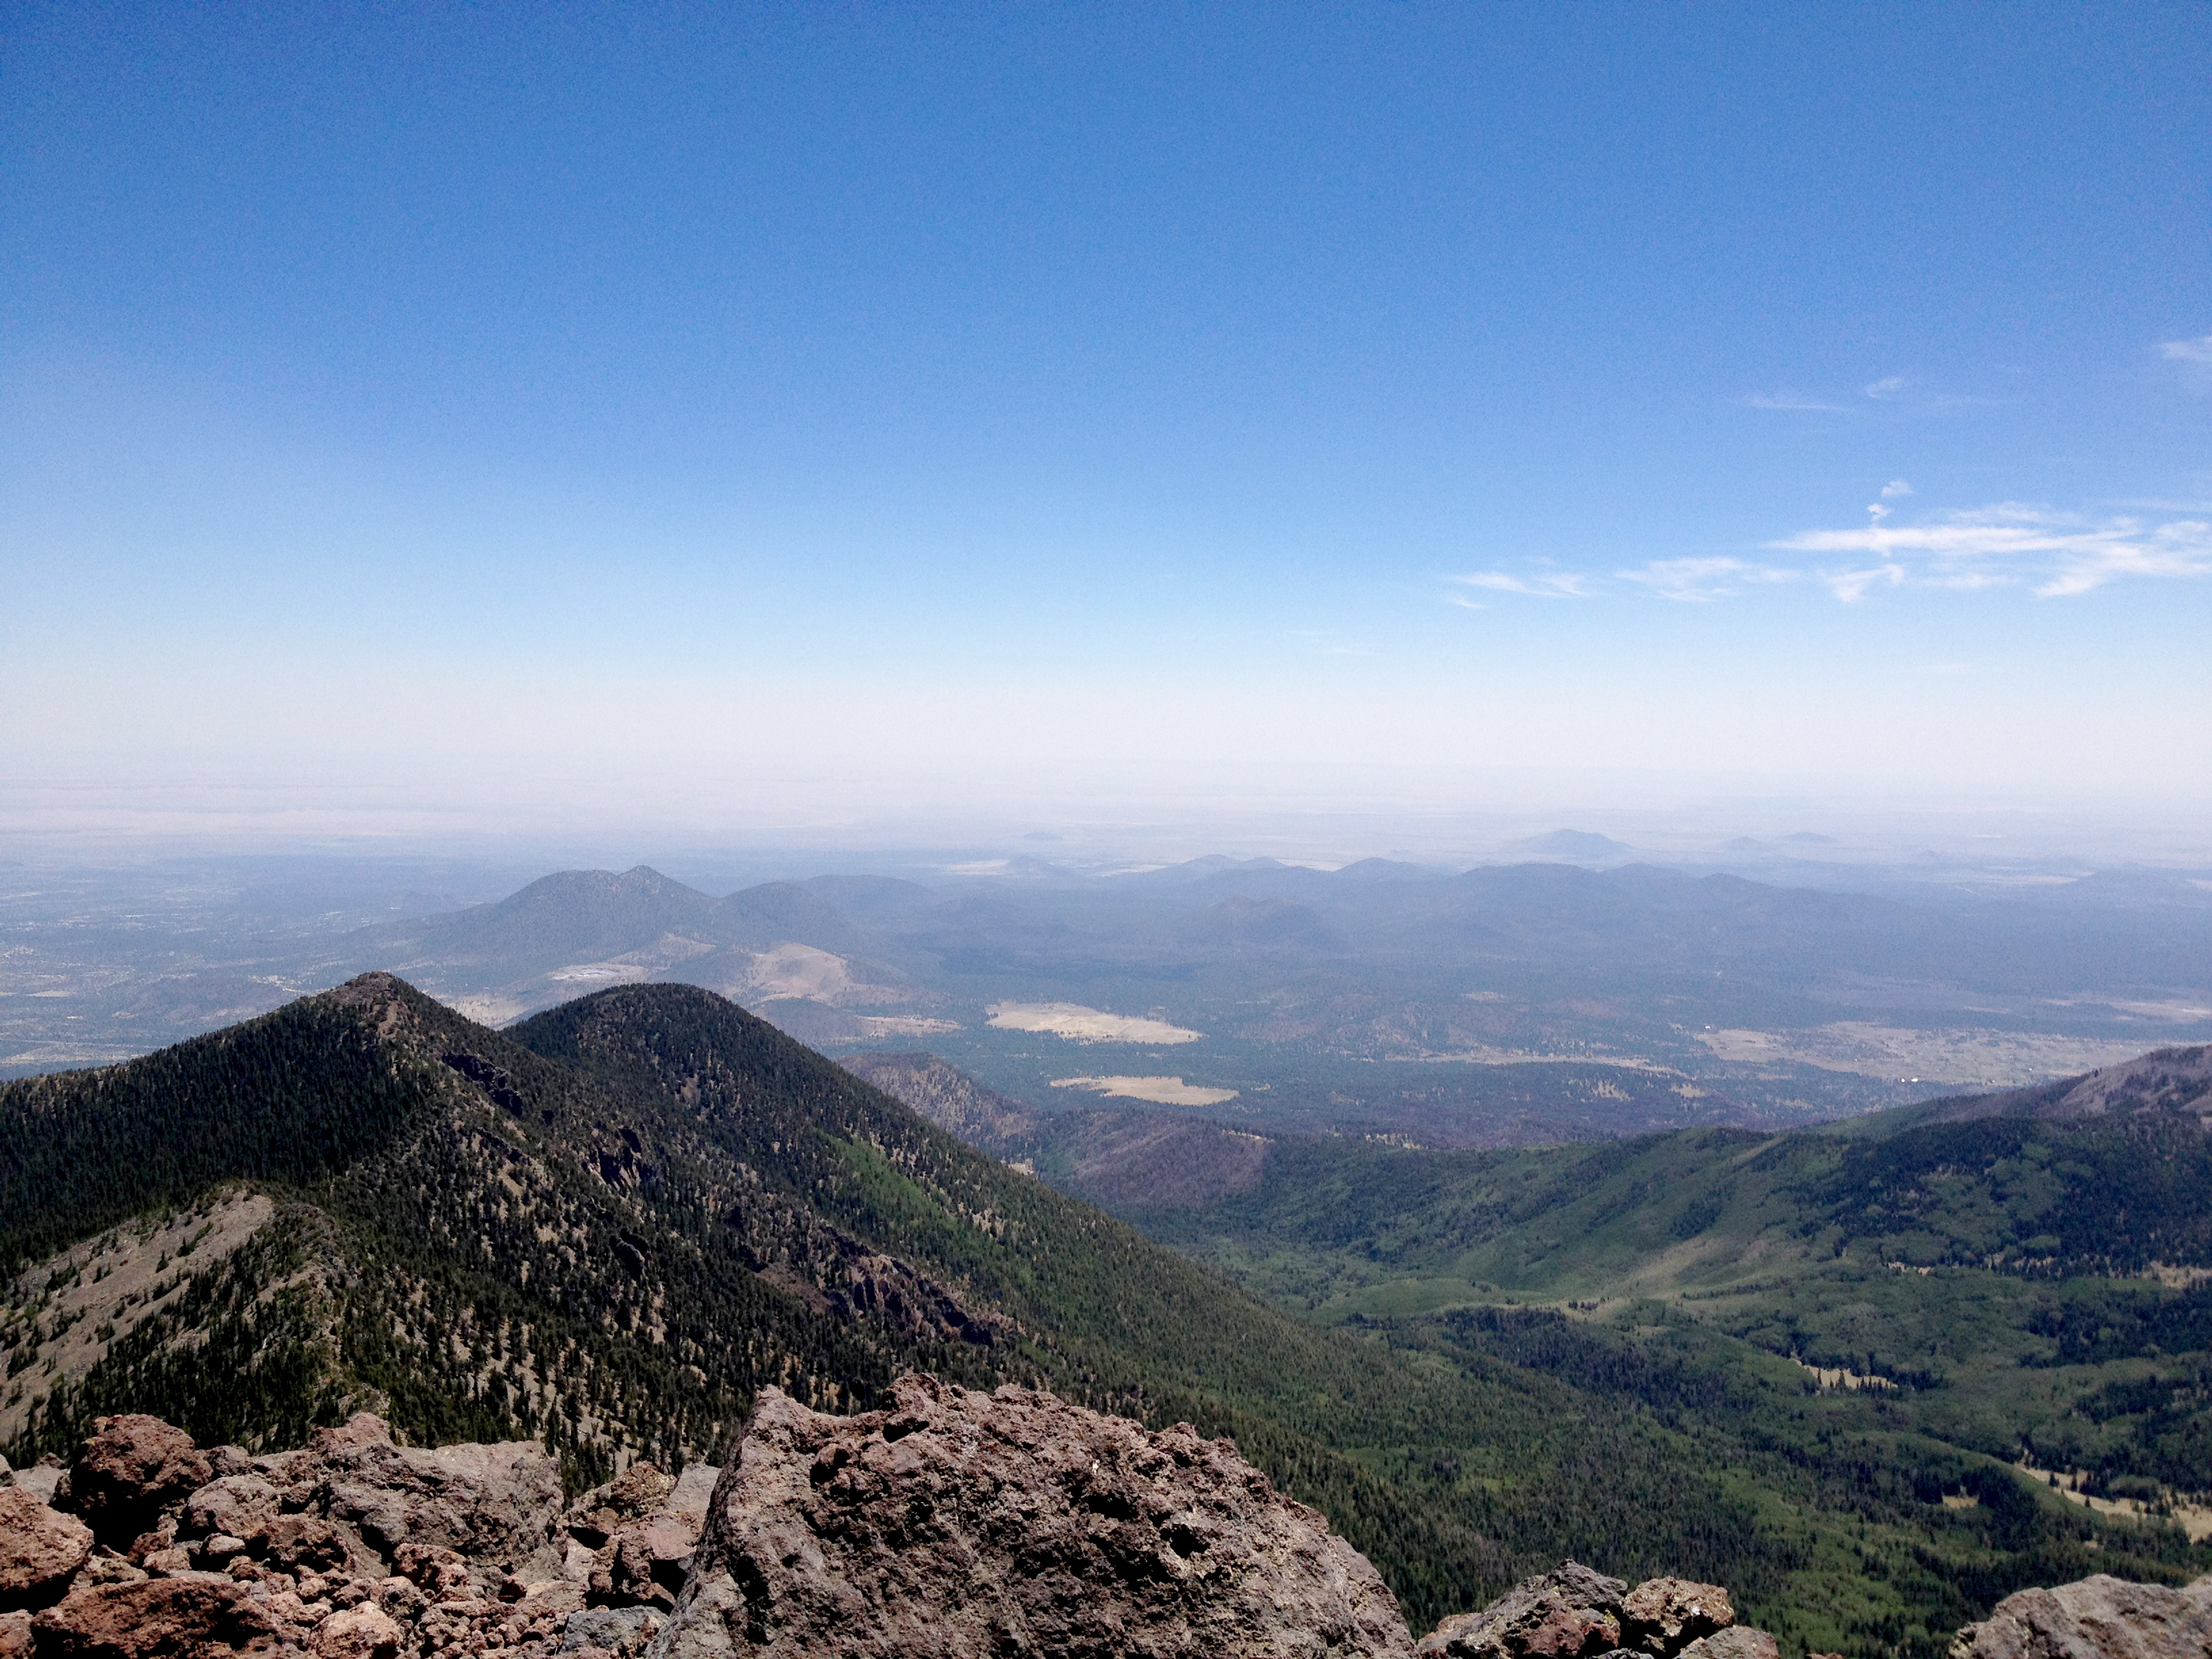 View from the summit of Humphreys Peak, the highest natural point in Arizona with an elevation of 12,637 feet and located in the Coconino National Forest, about 11 miles north of Flagstaff, Arizona | Stock image, St. George News